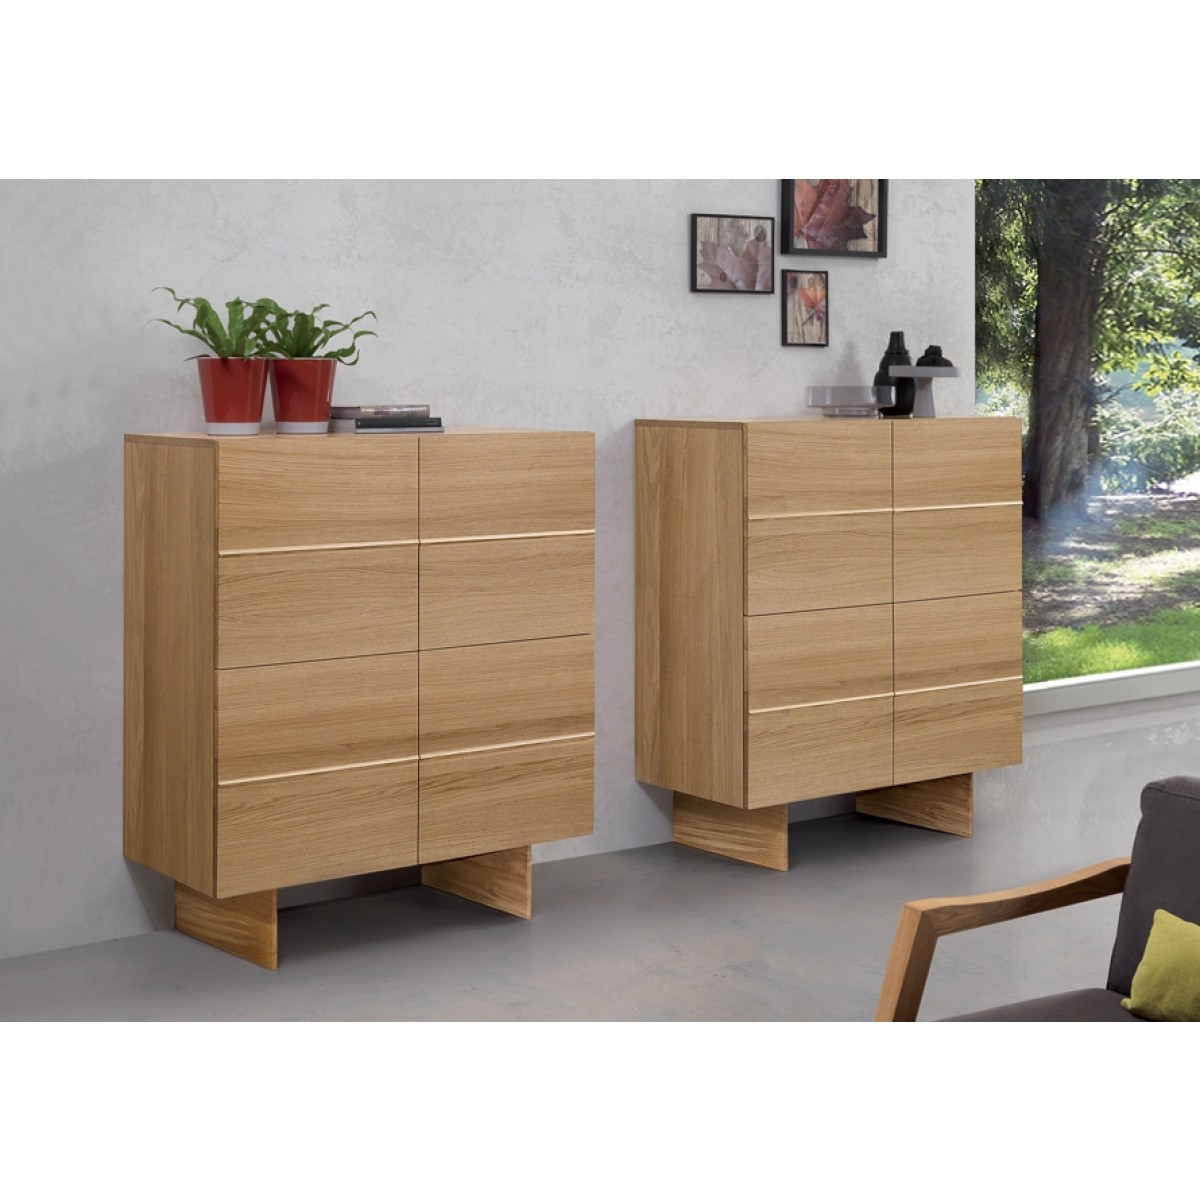 highboard eiche furniert schrank h he 120 cm. Black Bedroom Furniture Sets. Home Design Ideas